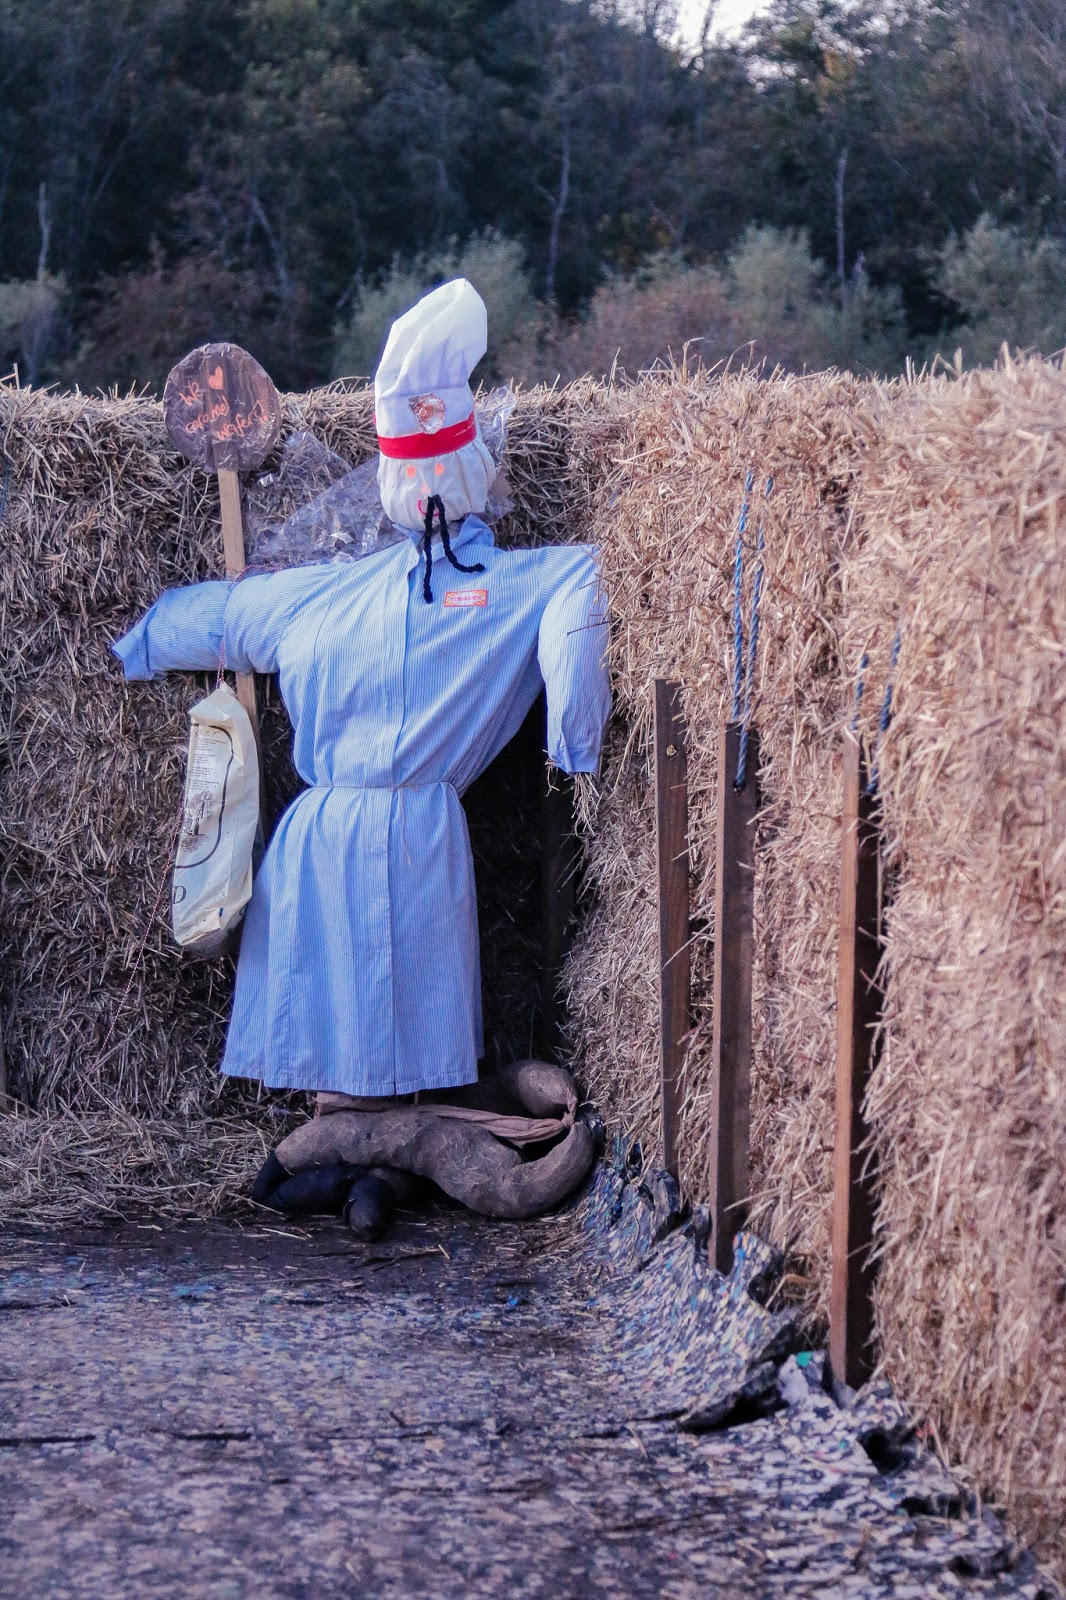 Close up photo of a scarecrow with a nurse costume on in the hay maze at M&Ds pumpkin patch